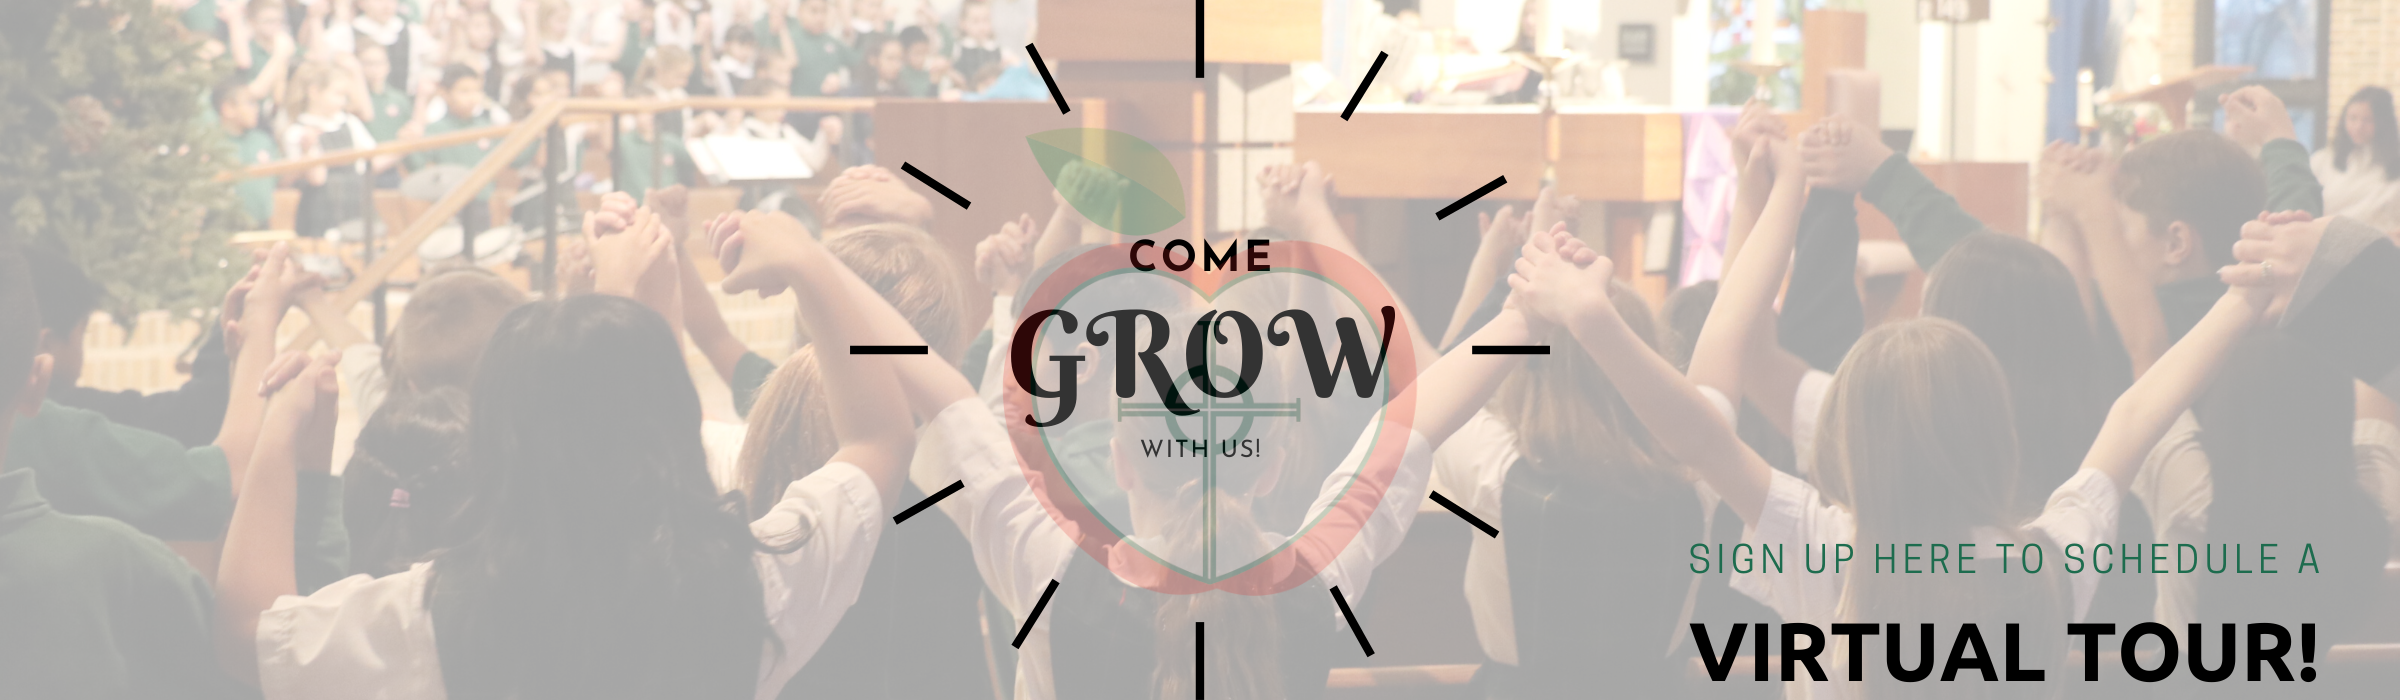 Virtual Tour Come Grow with Us Banner